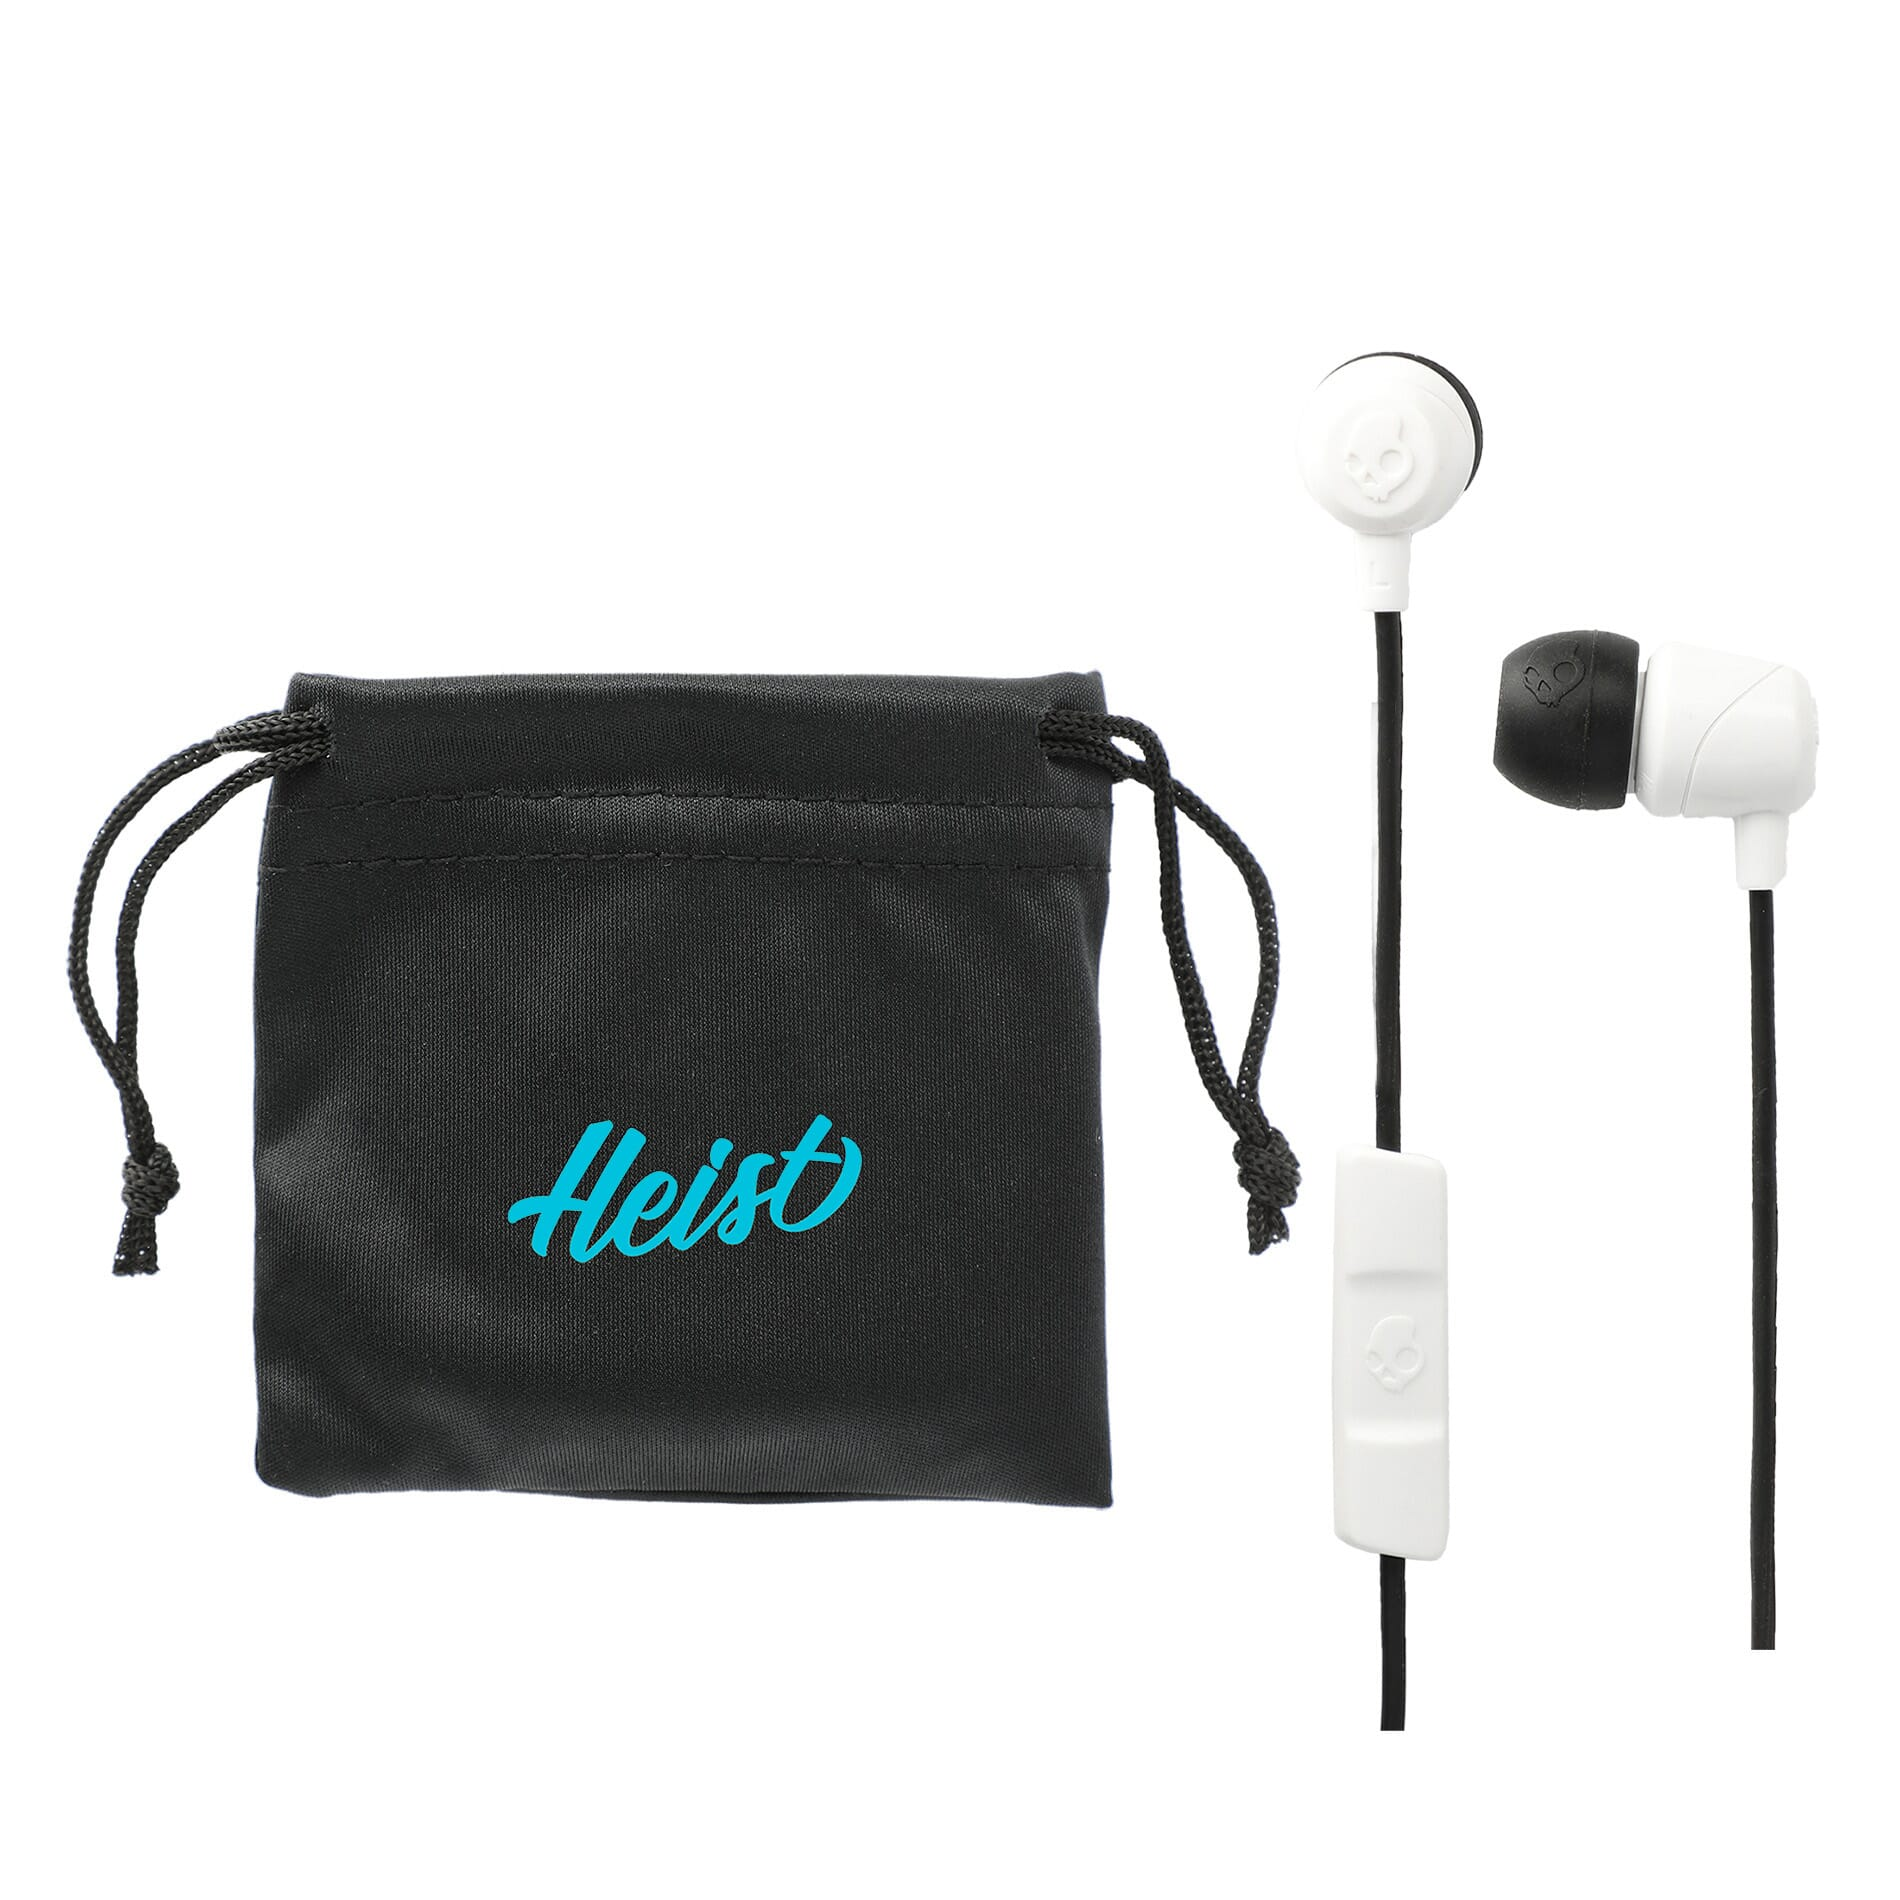 Skullcandy earbuds with carrying case with logo